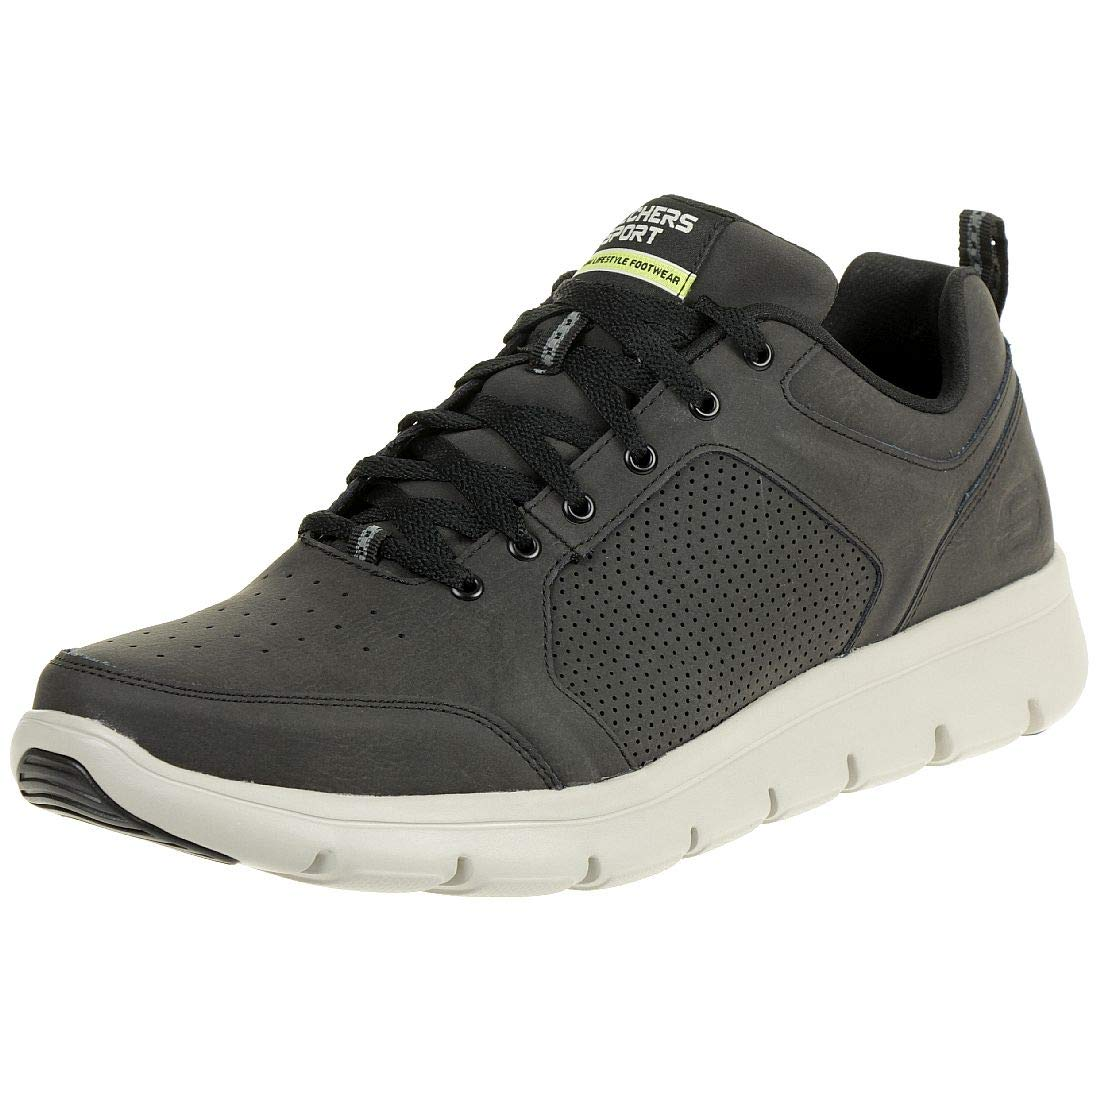 TALLA 43 EU. Skechers Marauder Sky JOLT Men Outdoor Sneaker Black 999840